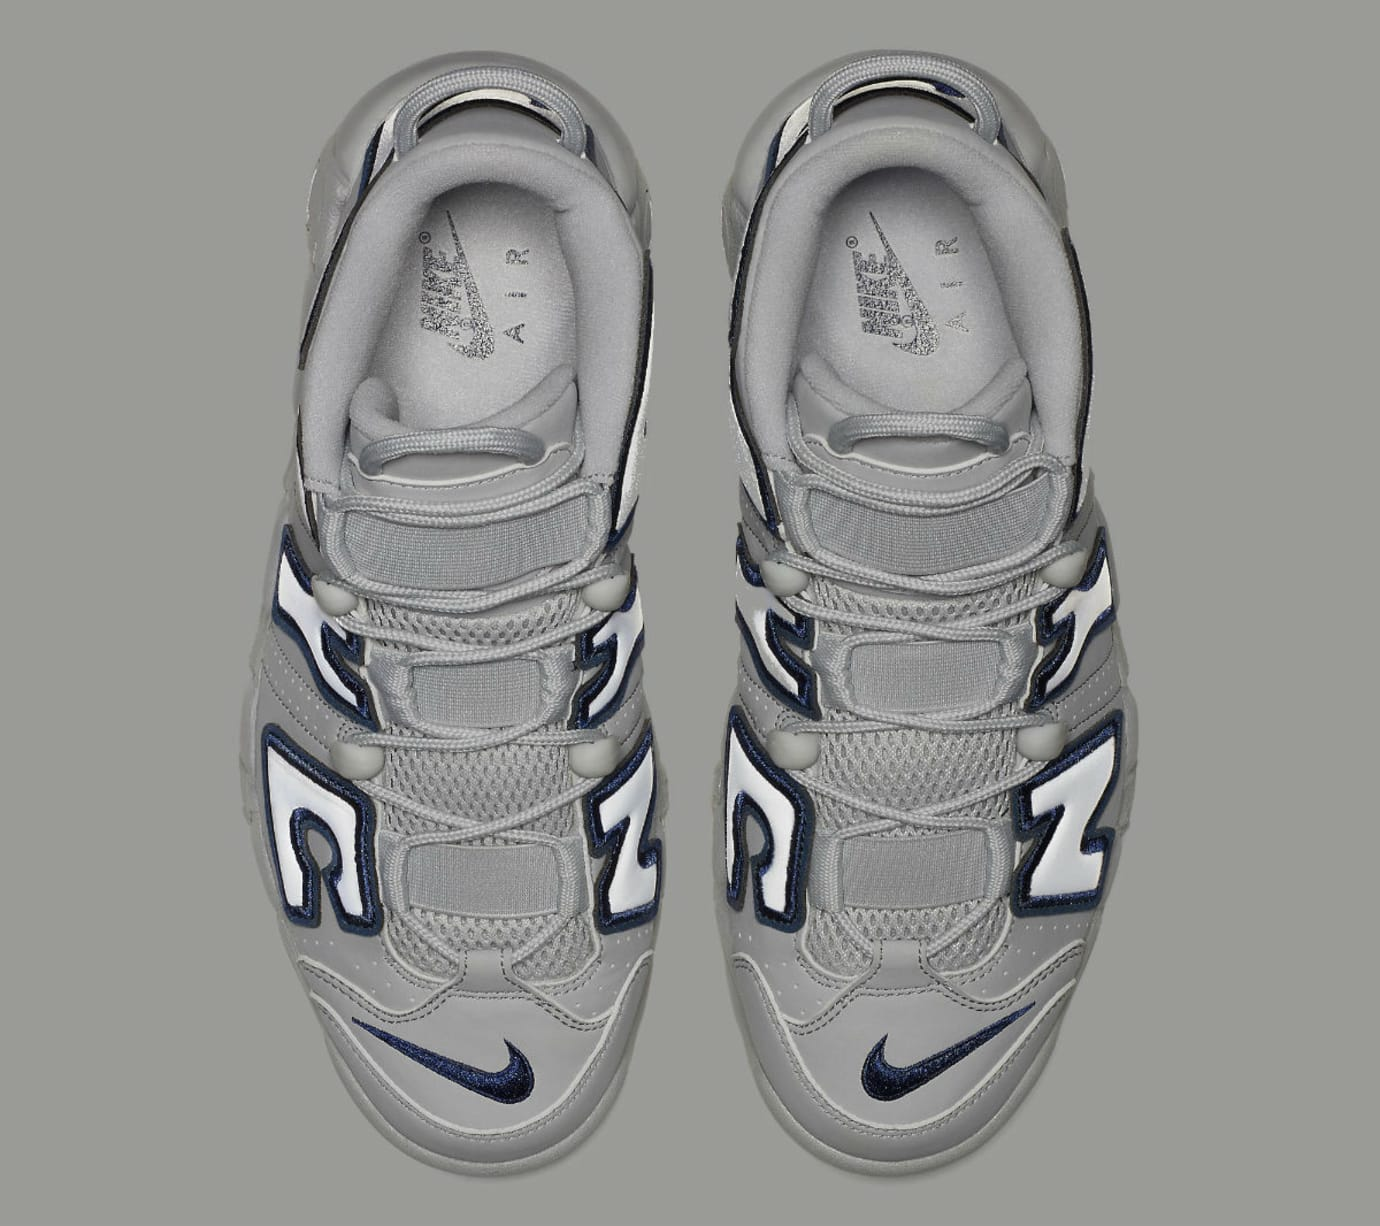 Nike Air More Uptempo NYC Release Date AJ3137-001 Top